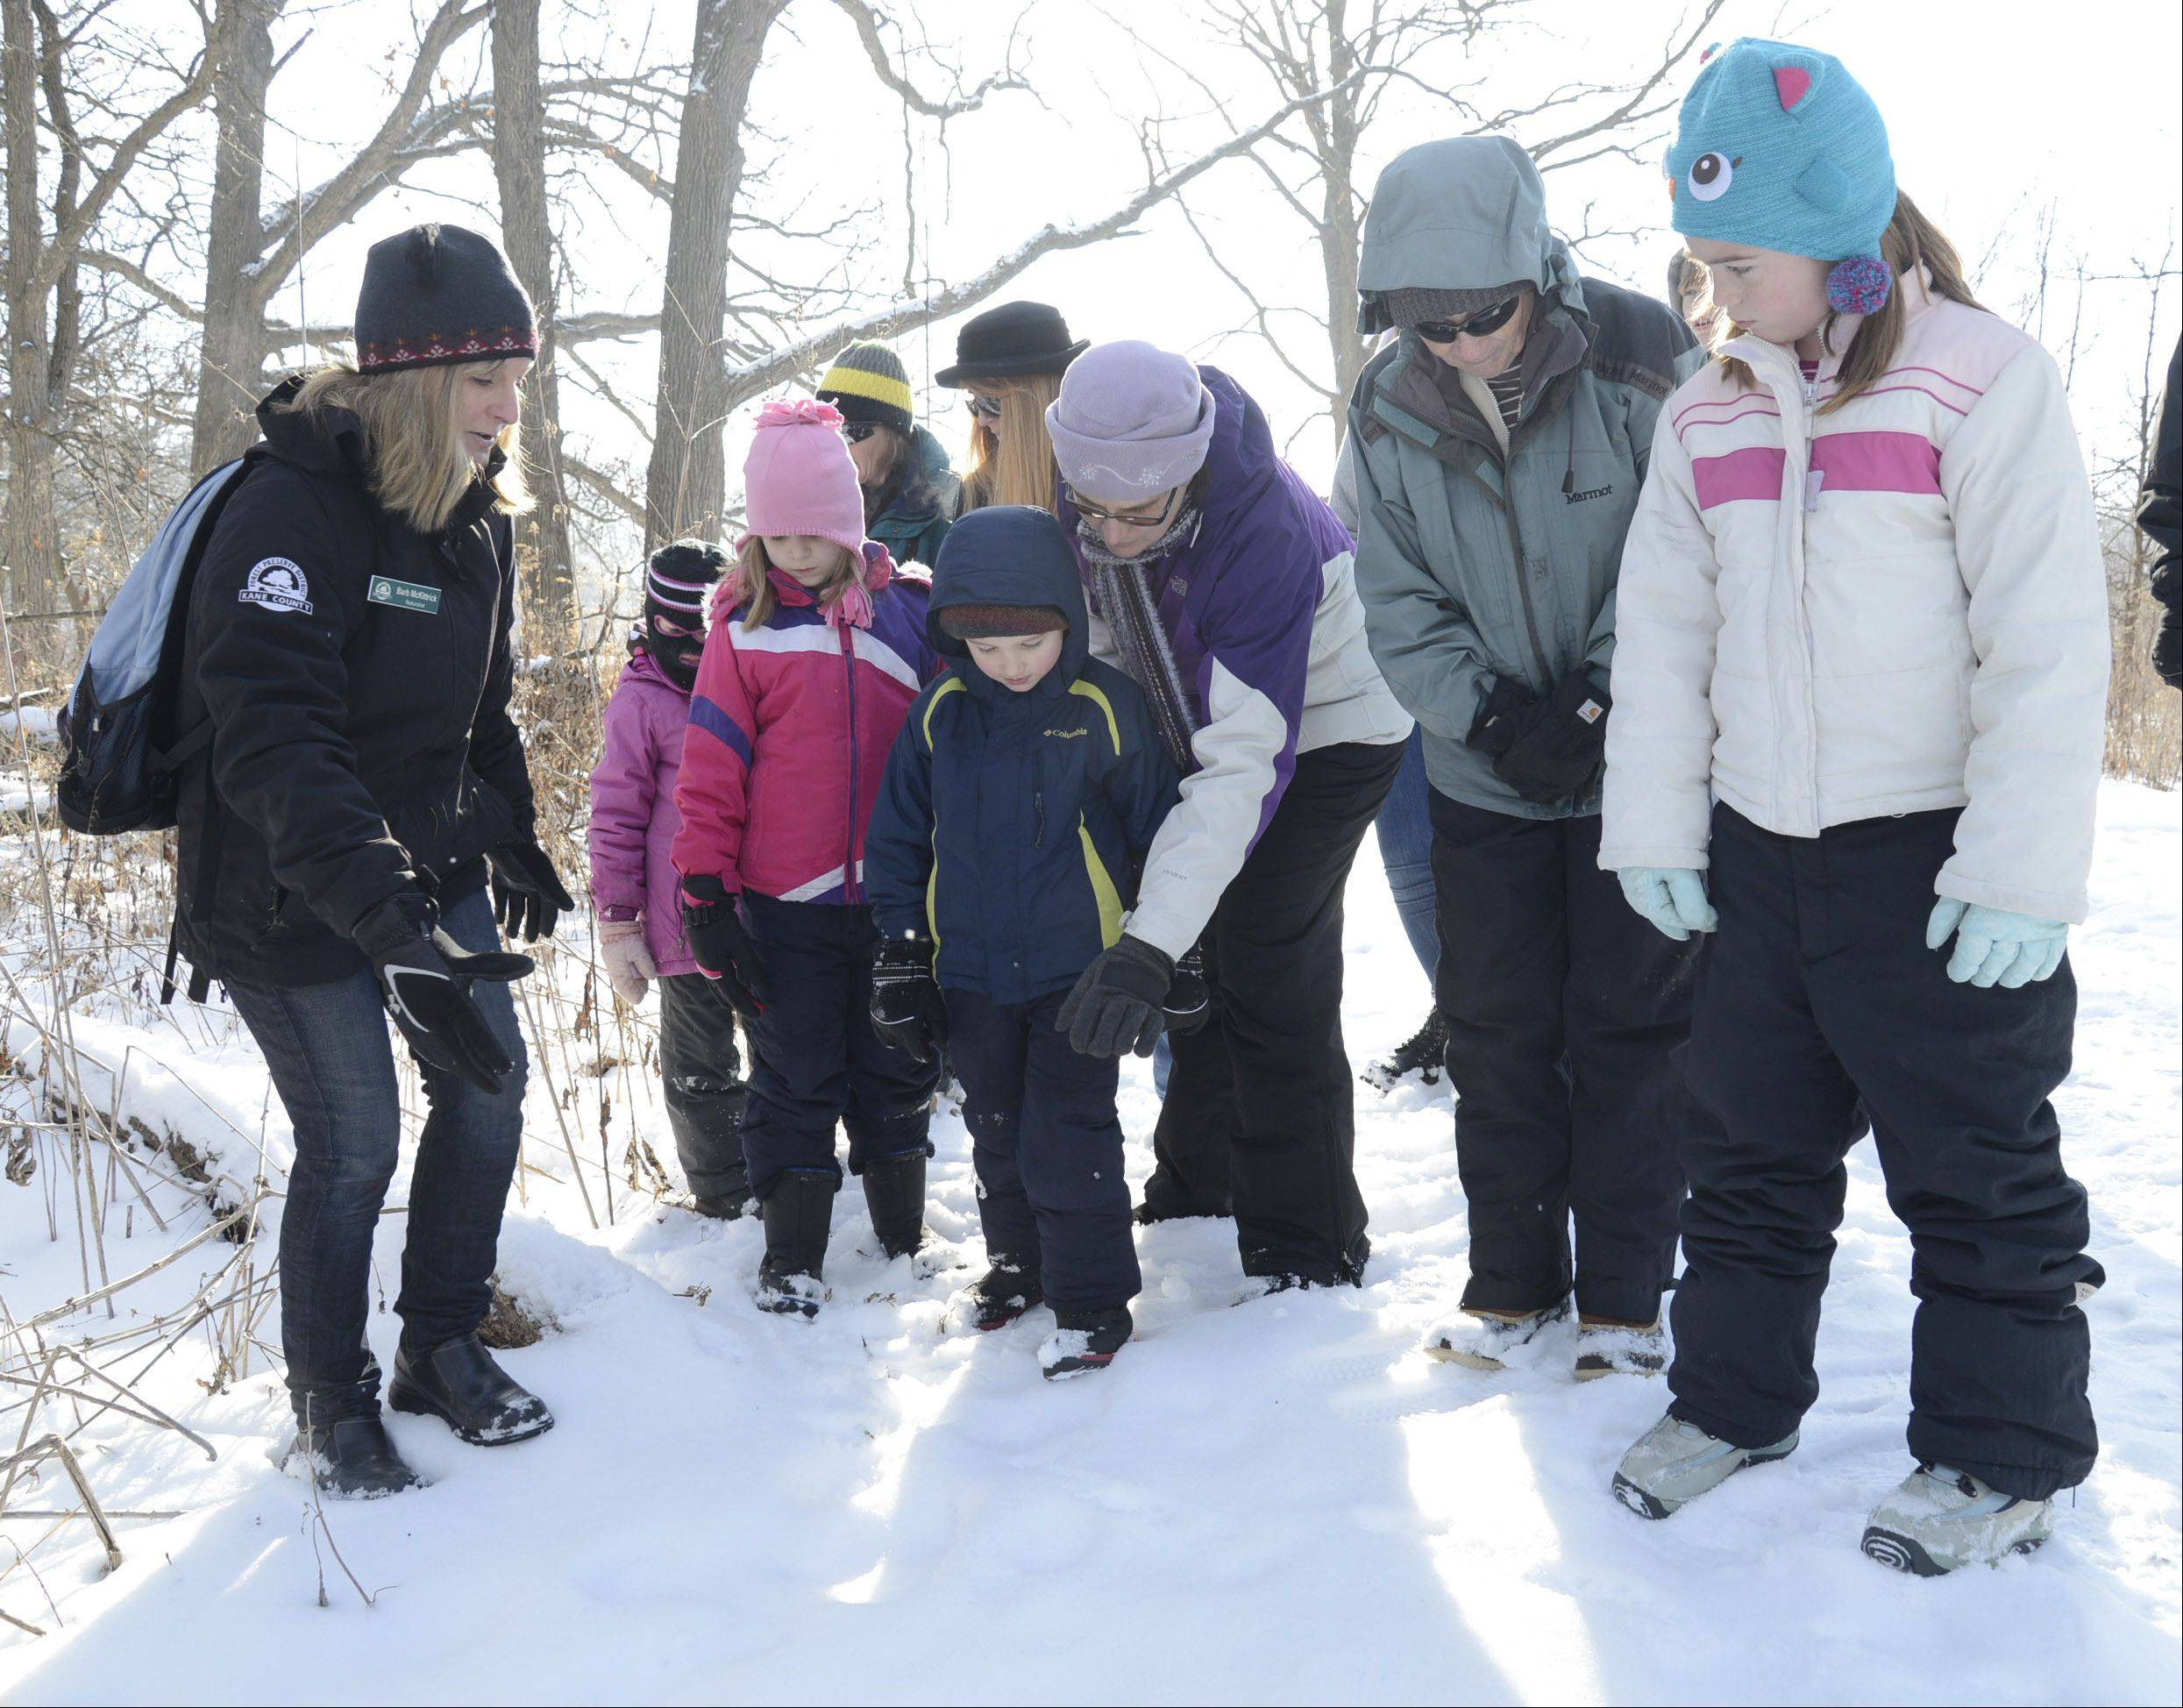 Kane County Forest Preserve naturalist Barb McKittrick, left, identifies raccoon tracks in the snow during a tracking and scavenger hunt program at Bliss Woods Forest Preserve in Sugar Grove on Friday. Lisel Ulaszek, of Campton Hills, points out the tracks to her son, Oliver, 4, next to Pat Schaefer of Elburn and her granddaughter Shannon Dame, 9, visiting from Michigan.